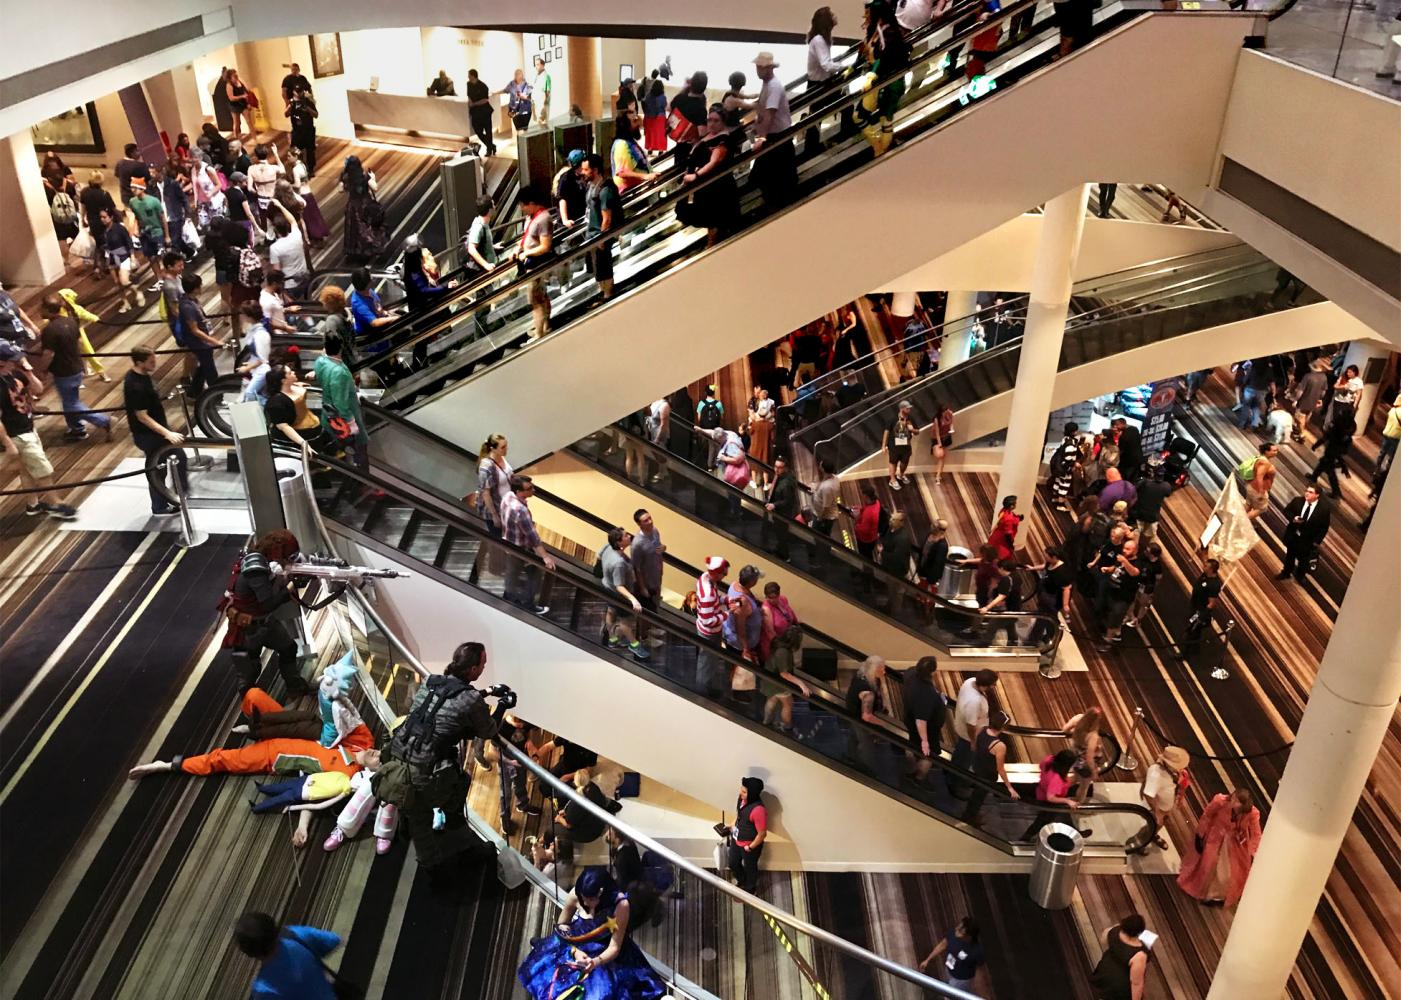 Once I reached the Marriott Marquis I became fully submerged in the Dragon Con experience. It can be a lot to take in, with three open floors full of people. The Marriott Marquis during DragonCon is definitely one of the best places to go people watching.